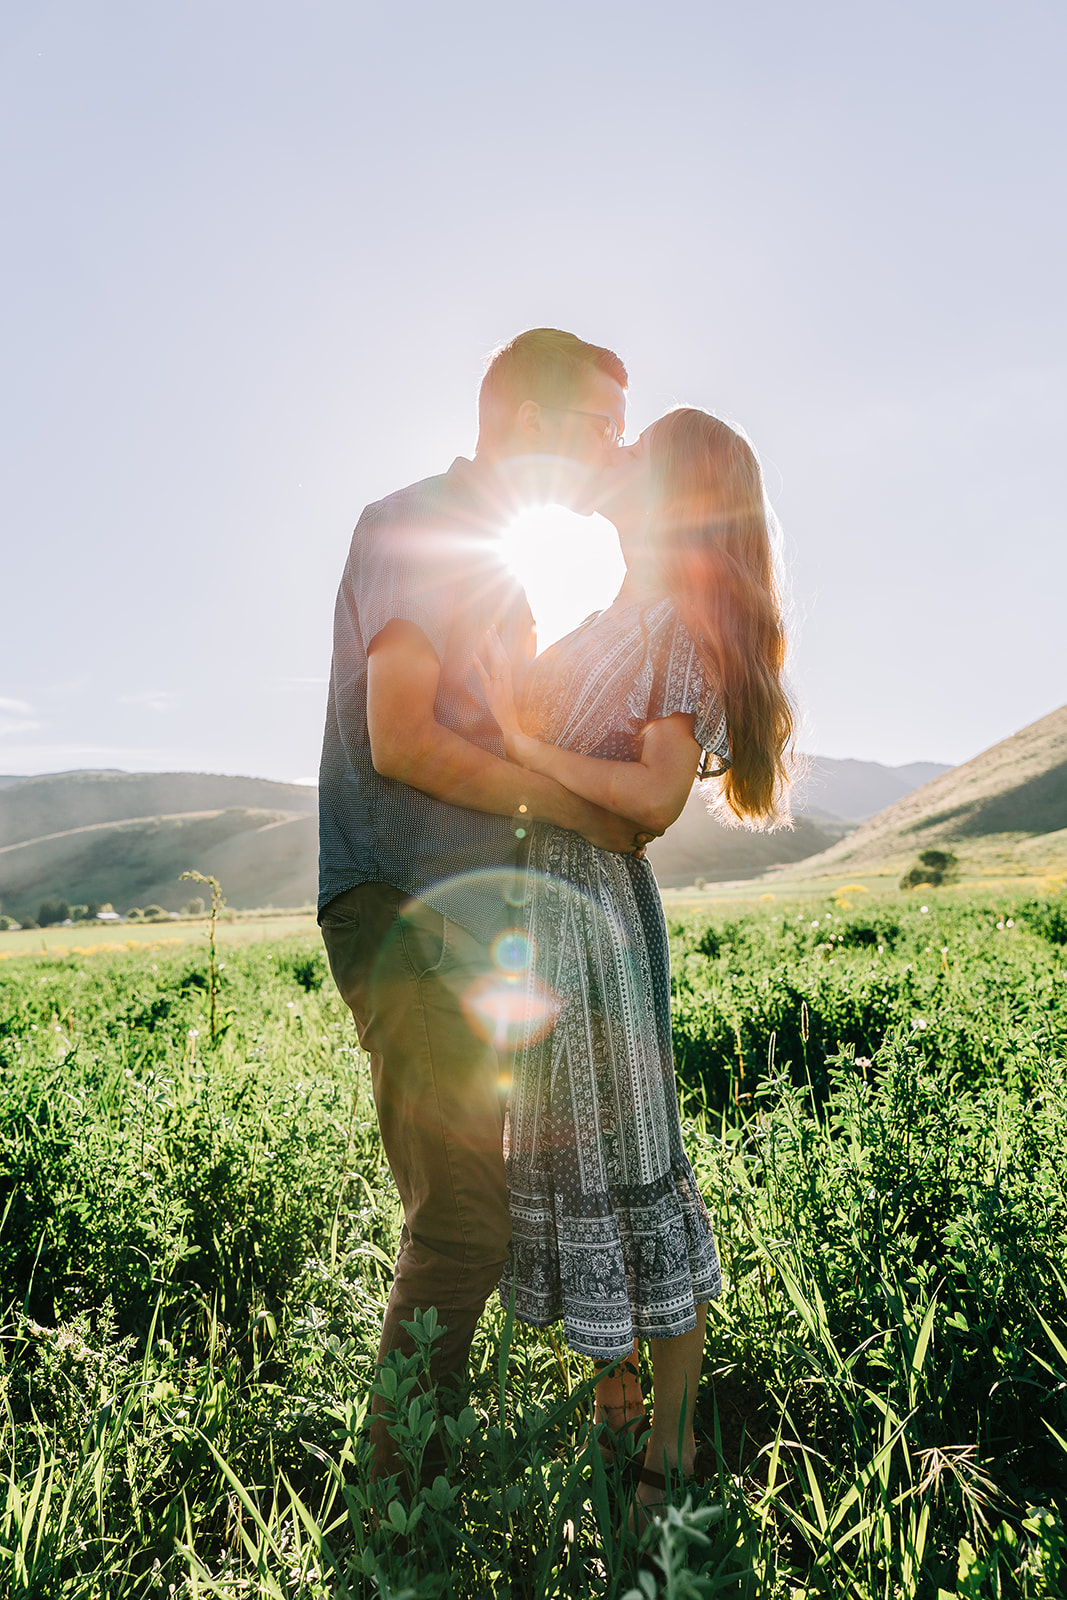 Engagement pictures kissing with sun burst sunset mountain engagement photo session with professional engagement photographer bella alder photography #bellaalderphoto #engagements #ldscouple #mountainengagements #savethedatephoto #weddingplanning #utahengagementphotographer #utahengagements #mantuautah #loganutahengagementphotographer #engagementpictures #engagementoutfits #outfitinspo